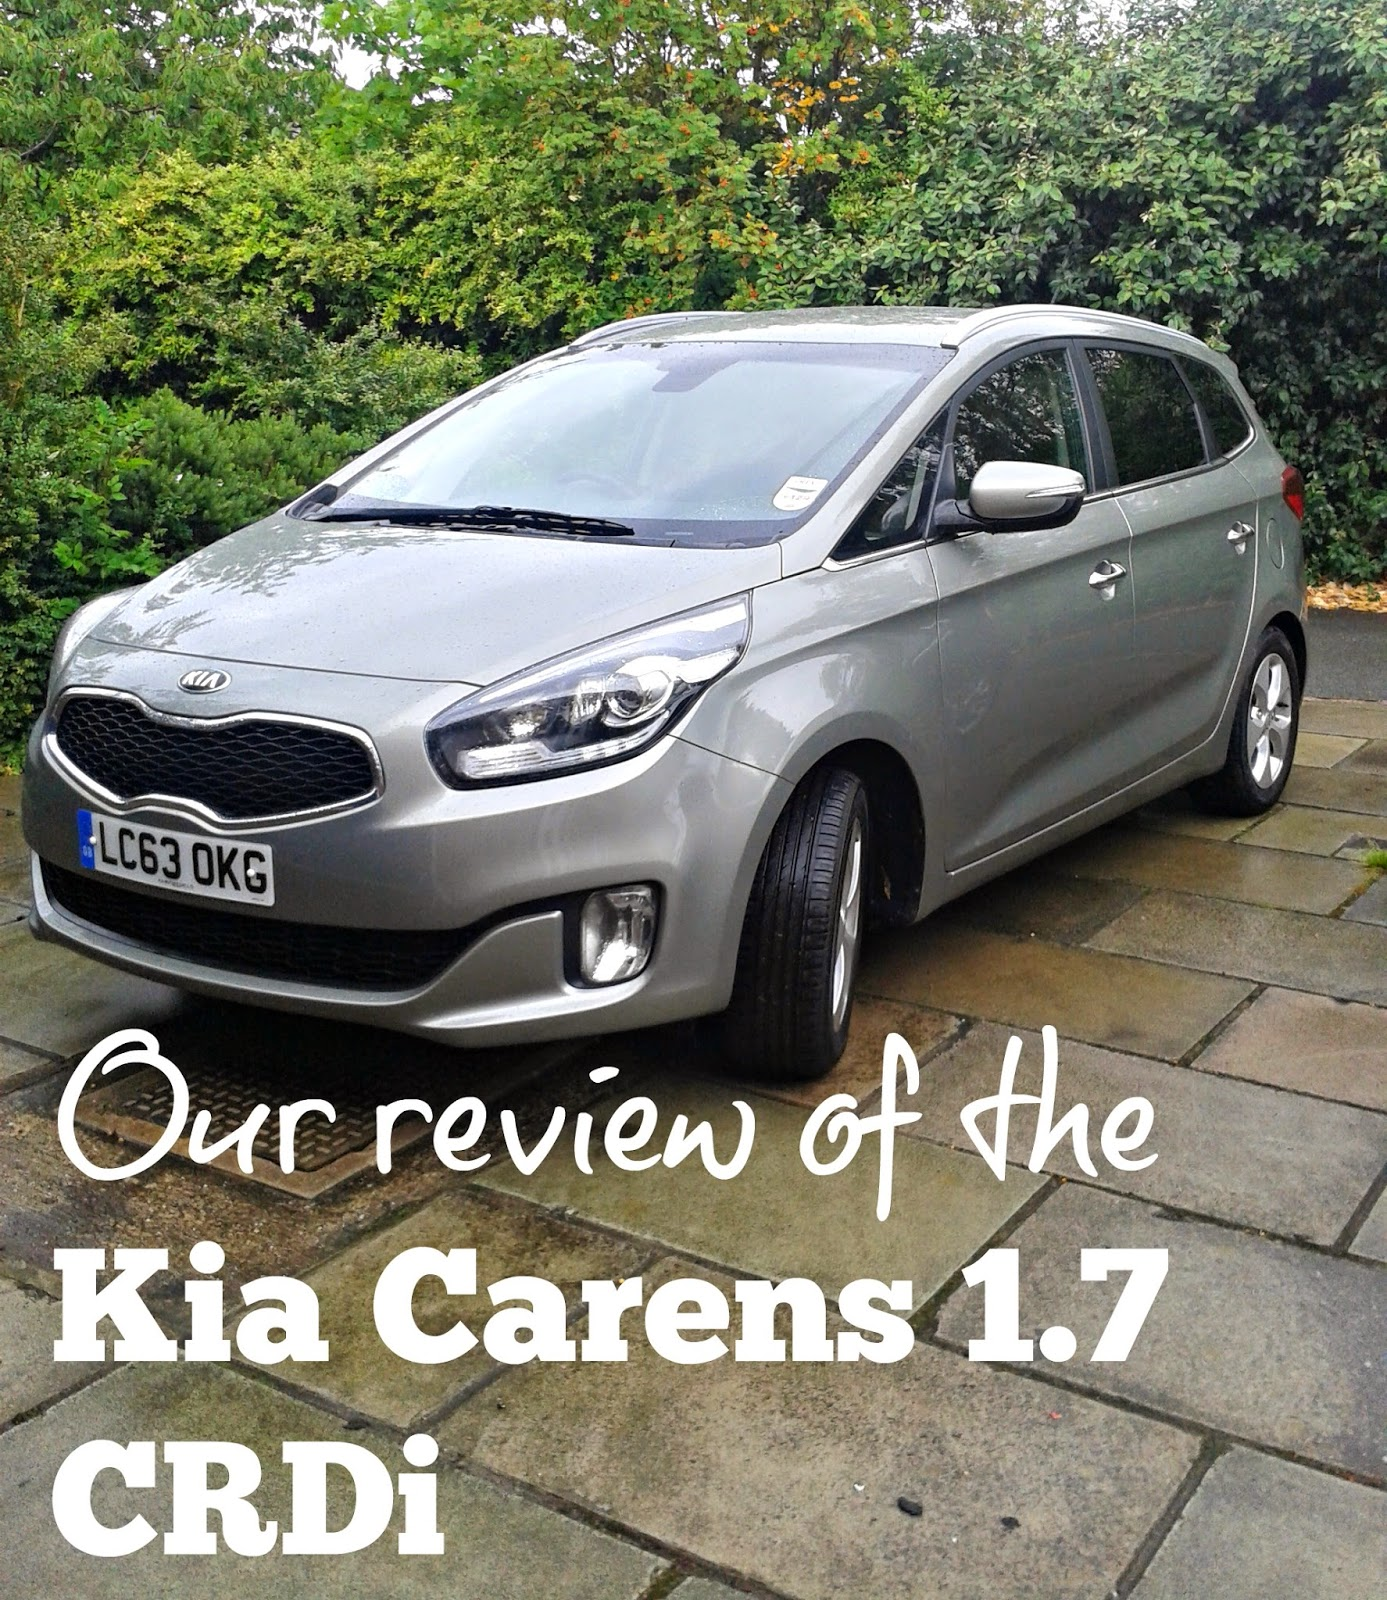 Kia Carens 1.7 CRDi review